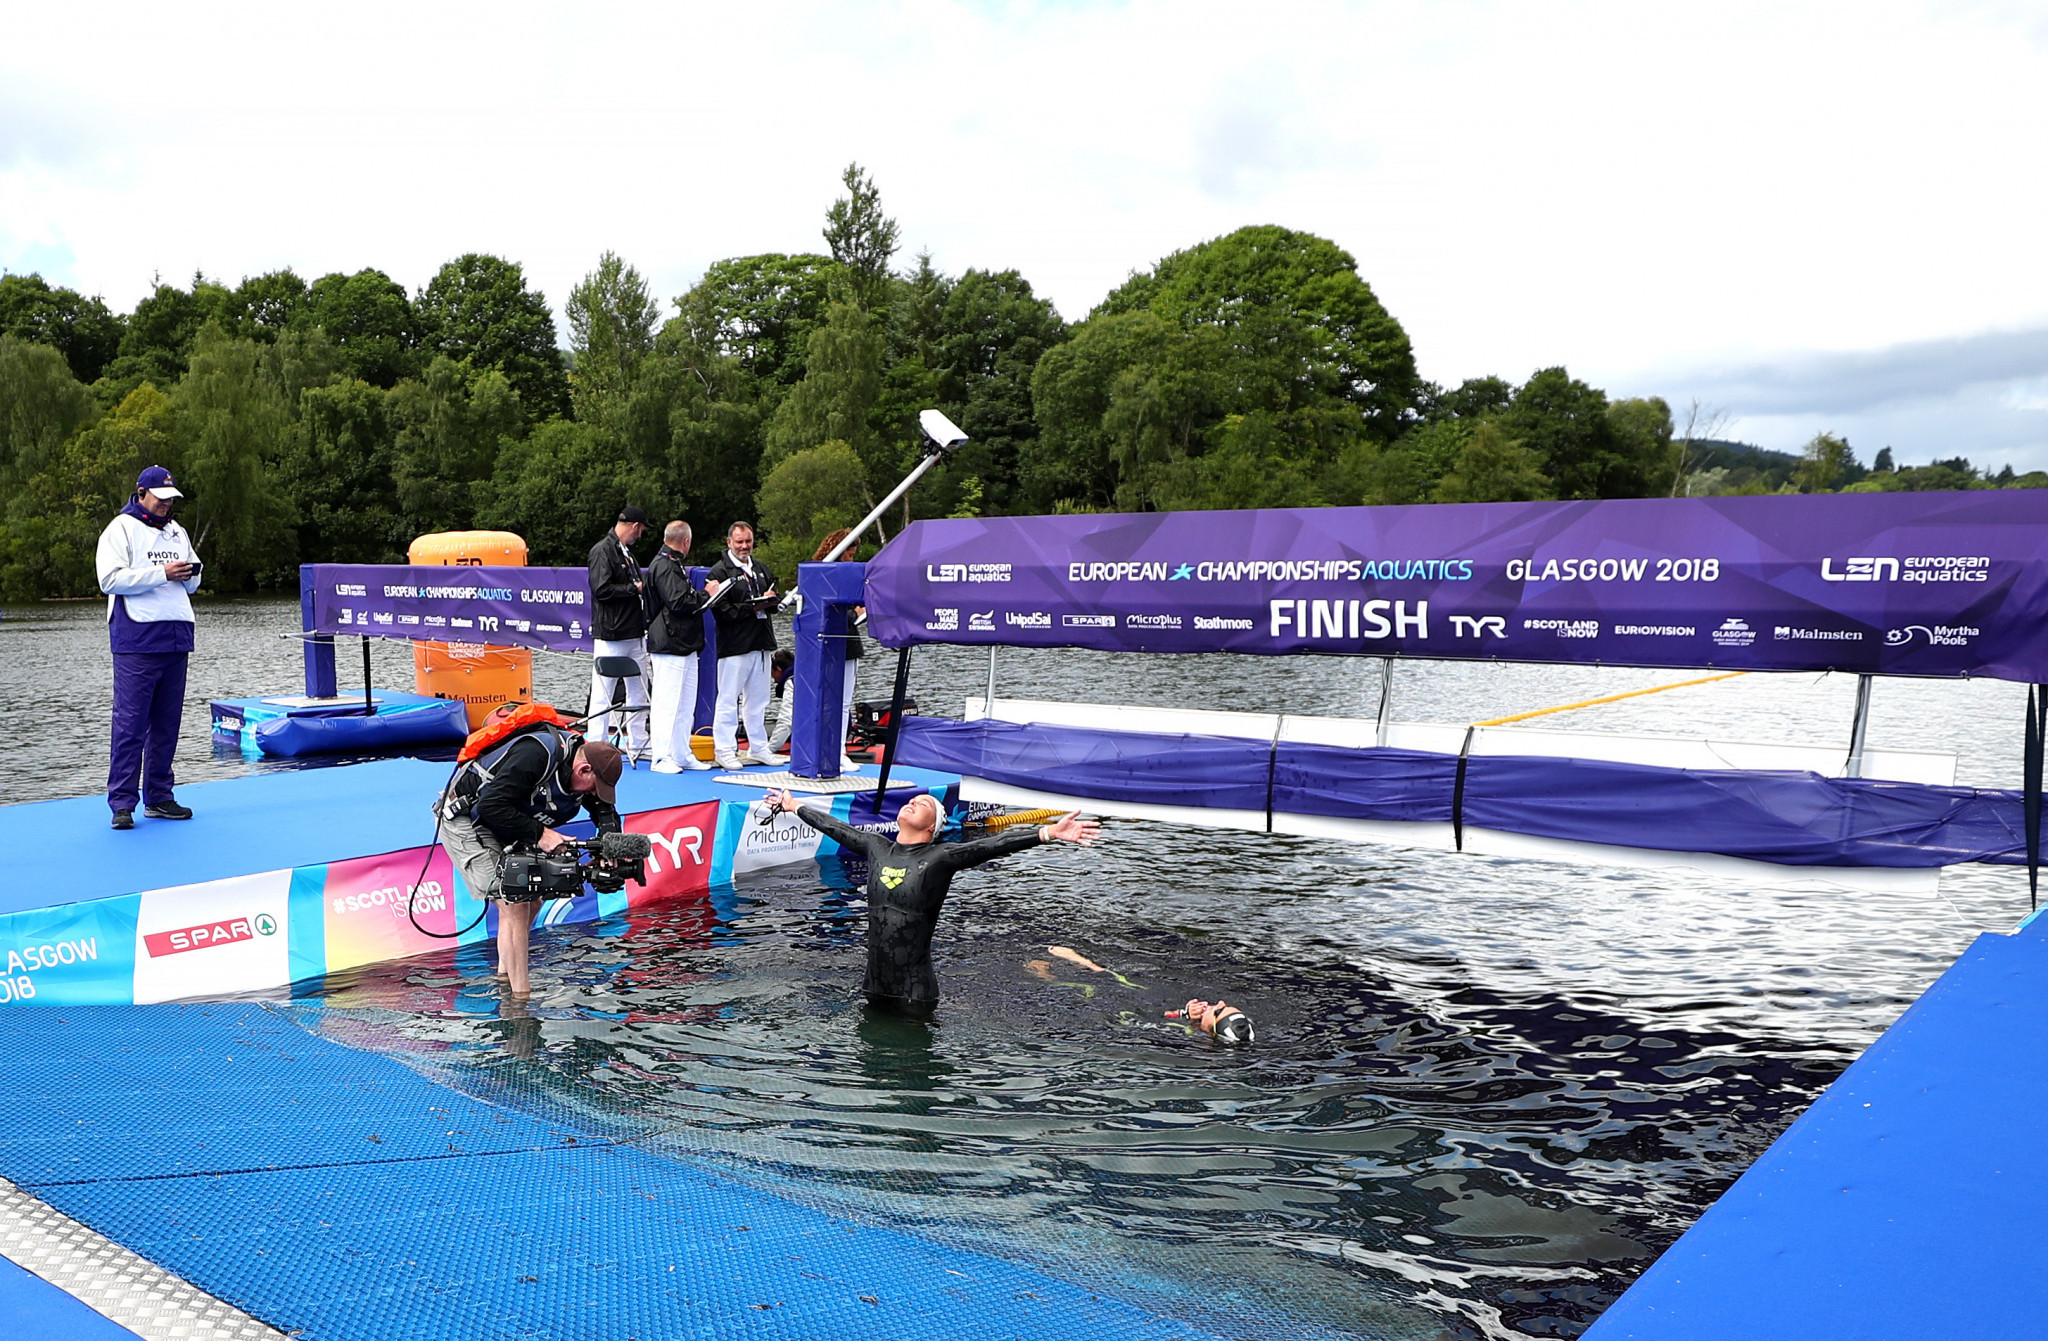 The Netherlands Sharon van Rouwendaal held off the challenge of Italy's Giulia Gabrielleschi in the 10km open water event in Loch Lomond to complete a gold medal double ©Getty Images